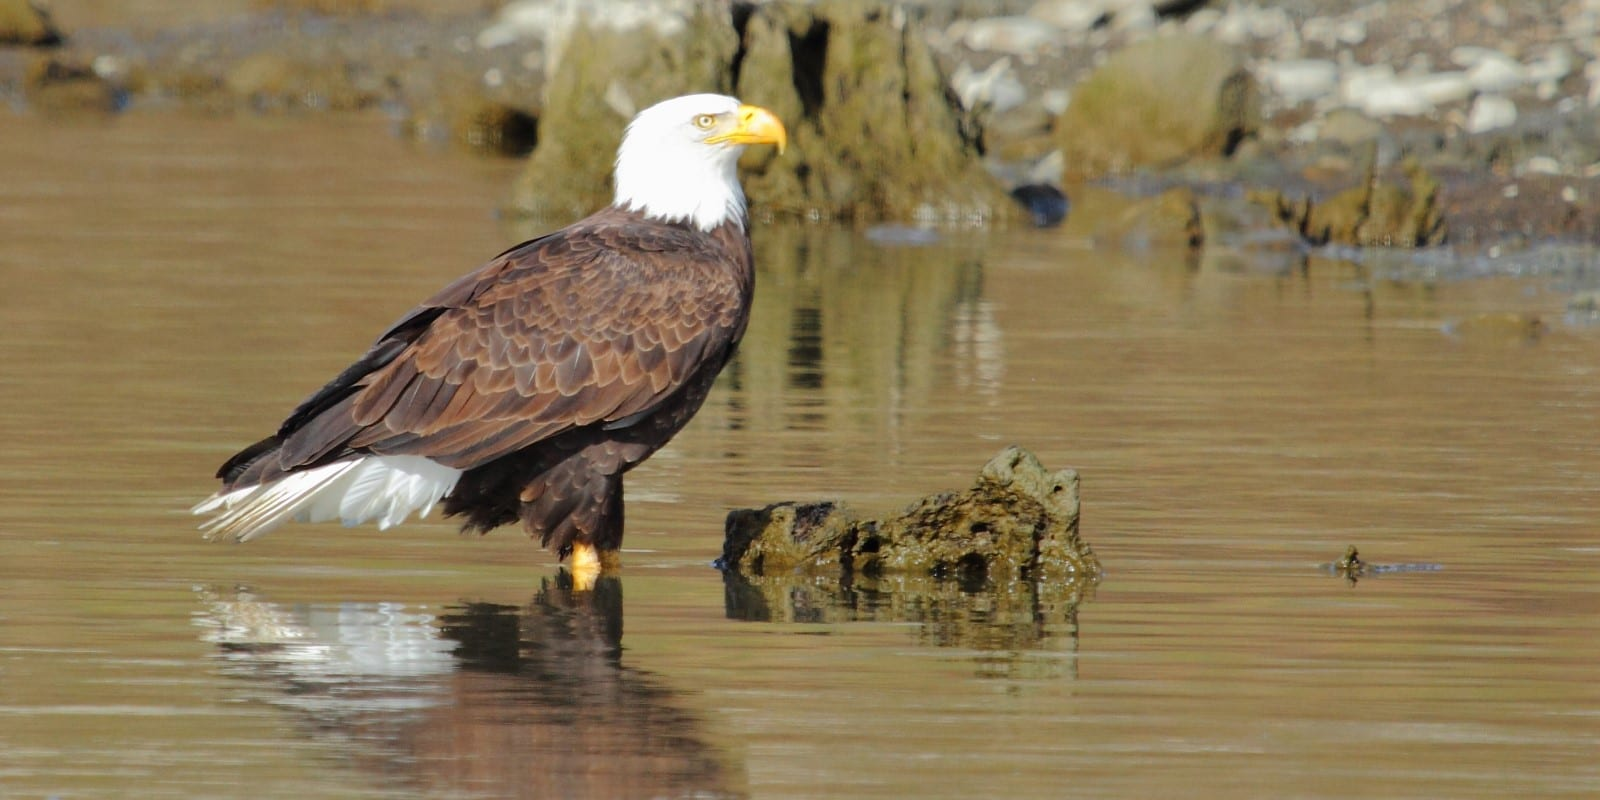 Bald Eagle in the water at Lake Cachuma